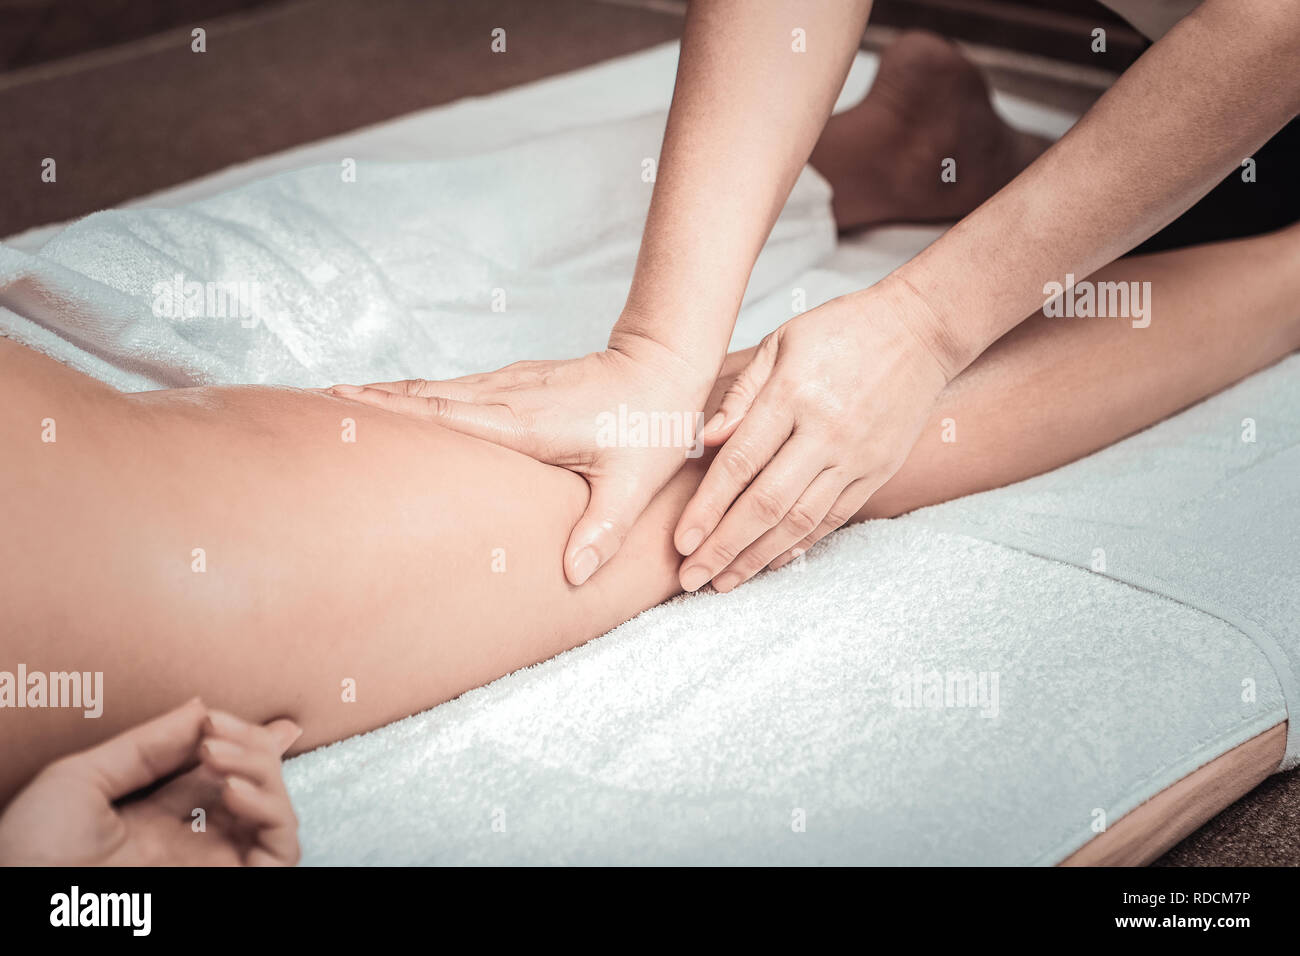 Professional female masseuse touching her clients leg - Stock Image